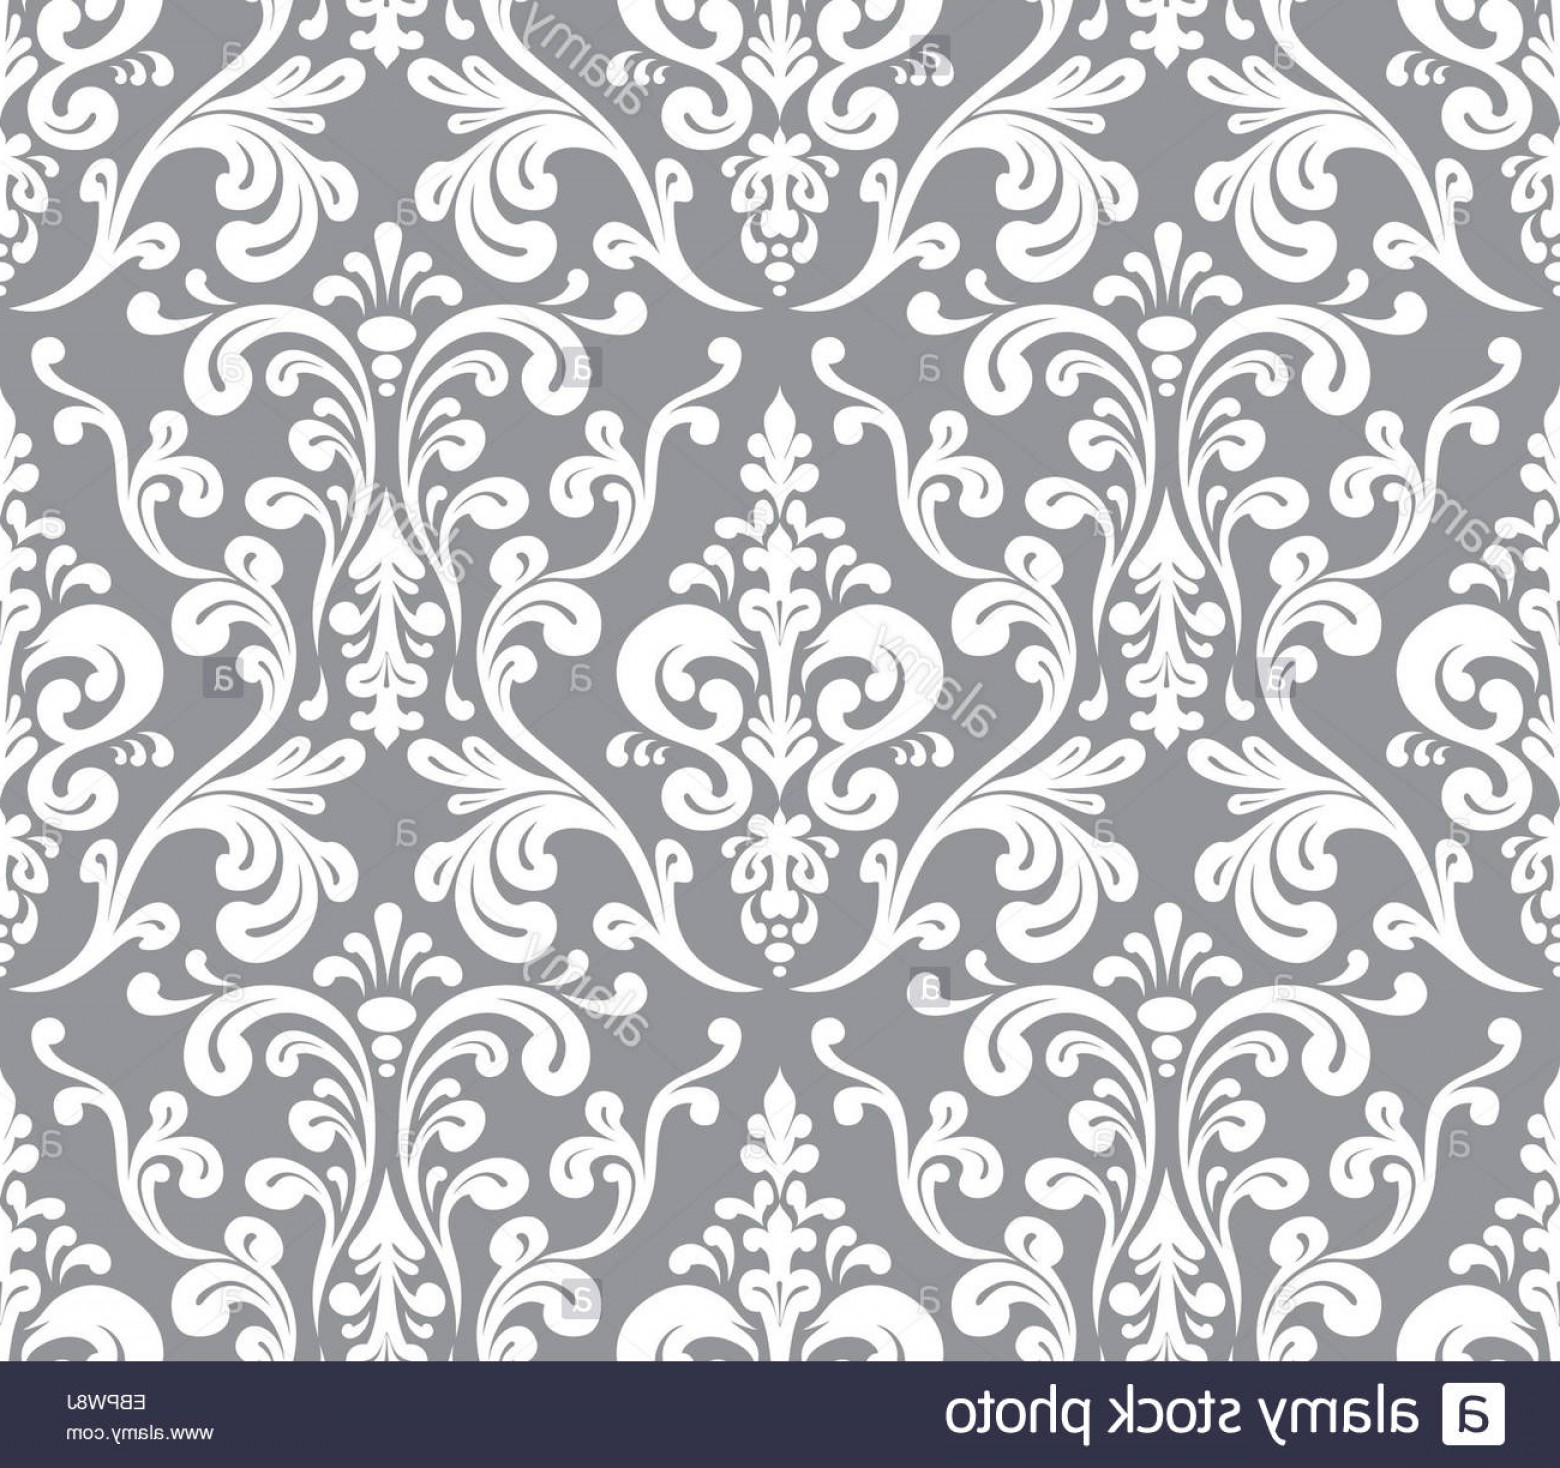 Damask Background Vector Art: Stock Photo Vector Seamless Elegant Damask Pattern Grey And White